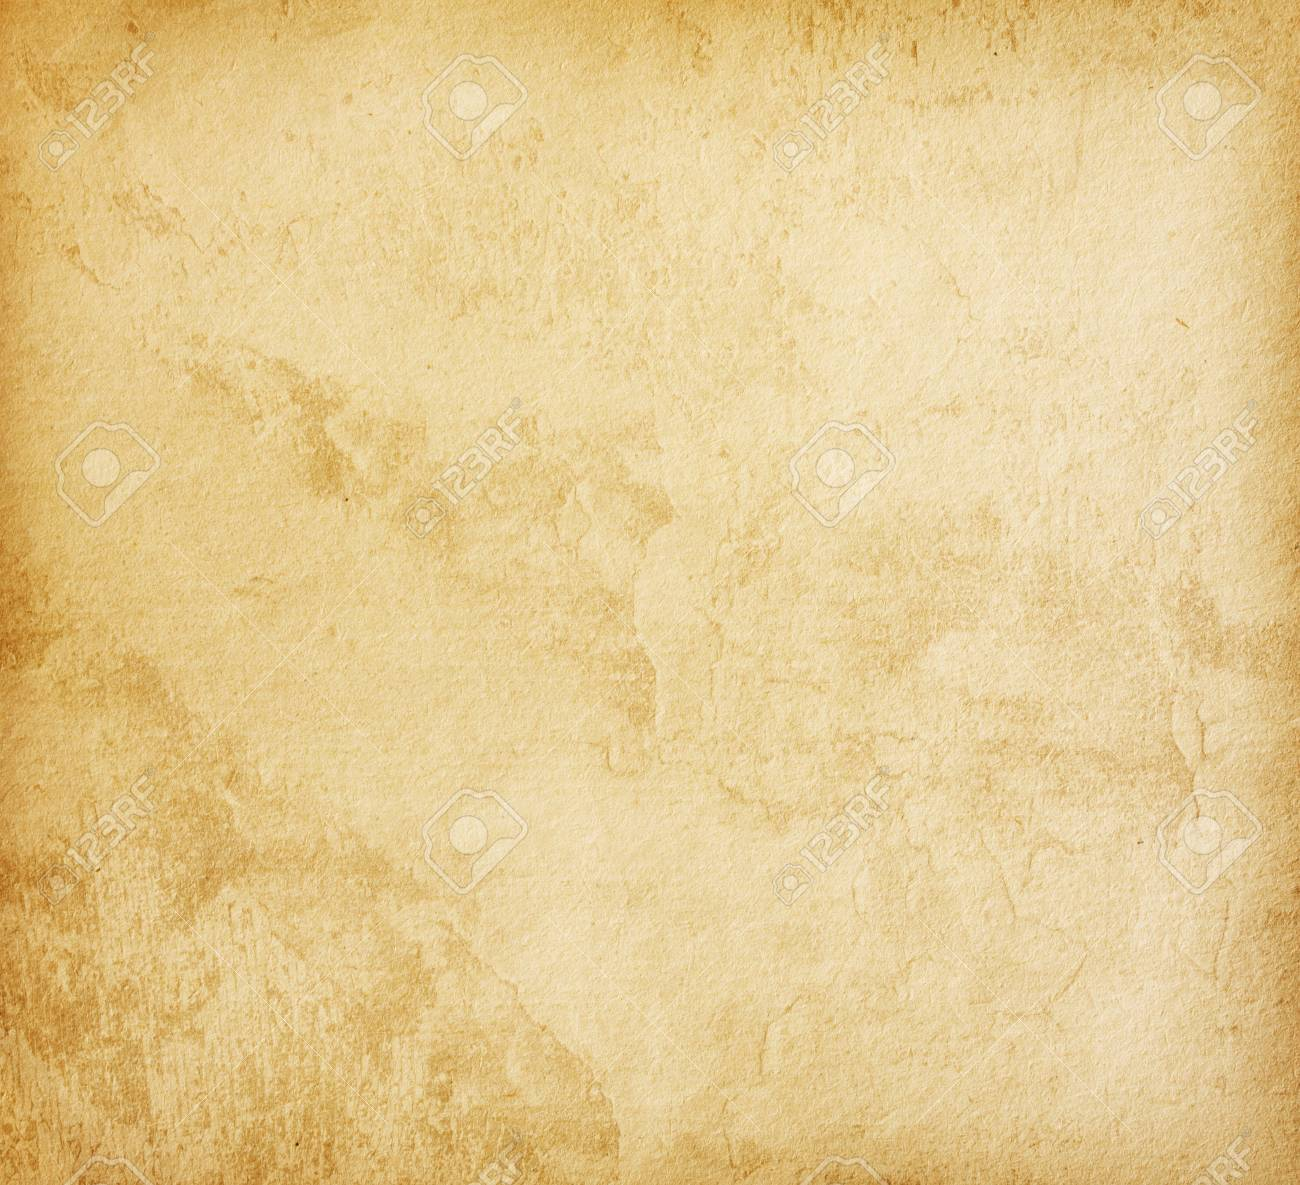 Vintage Paper Textures Old Paper Stuff Stock Photo Picture And Royalty Free Image Image 17333136